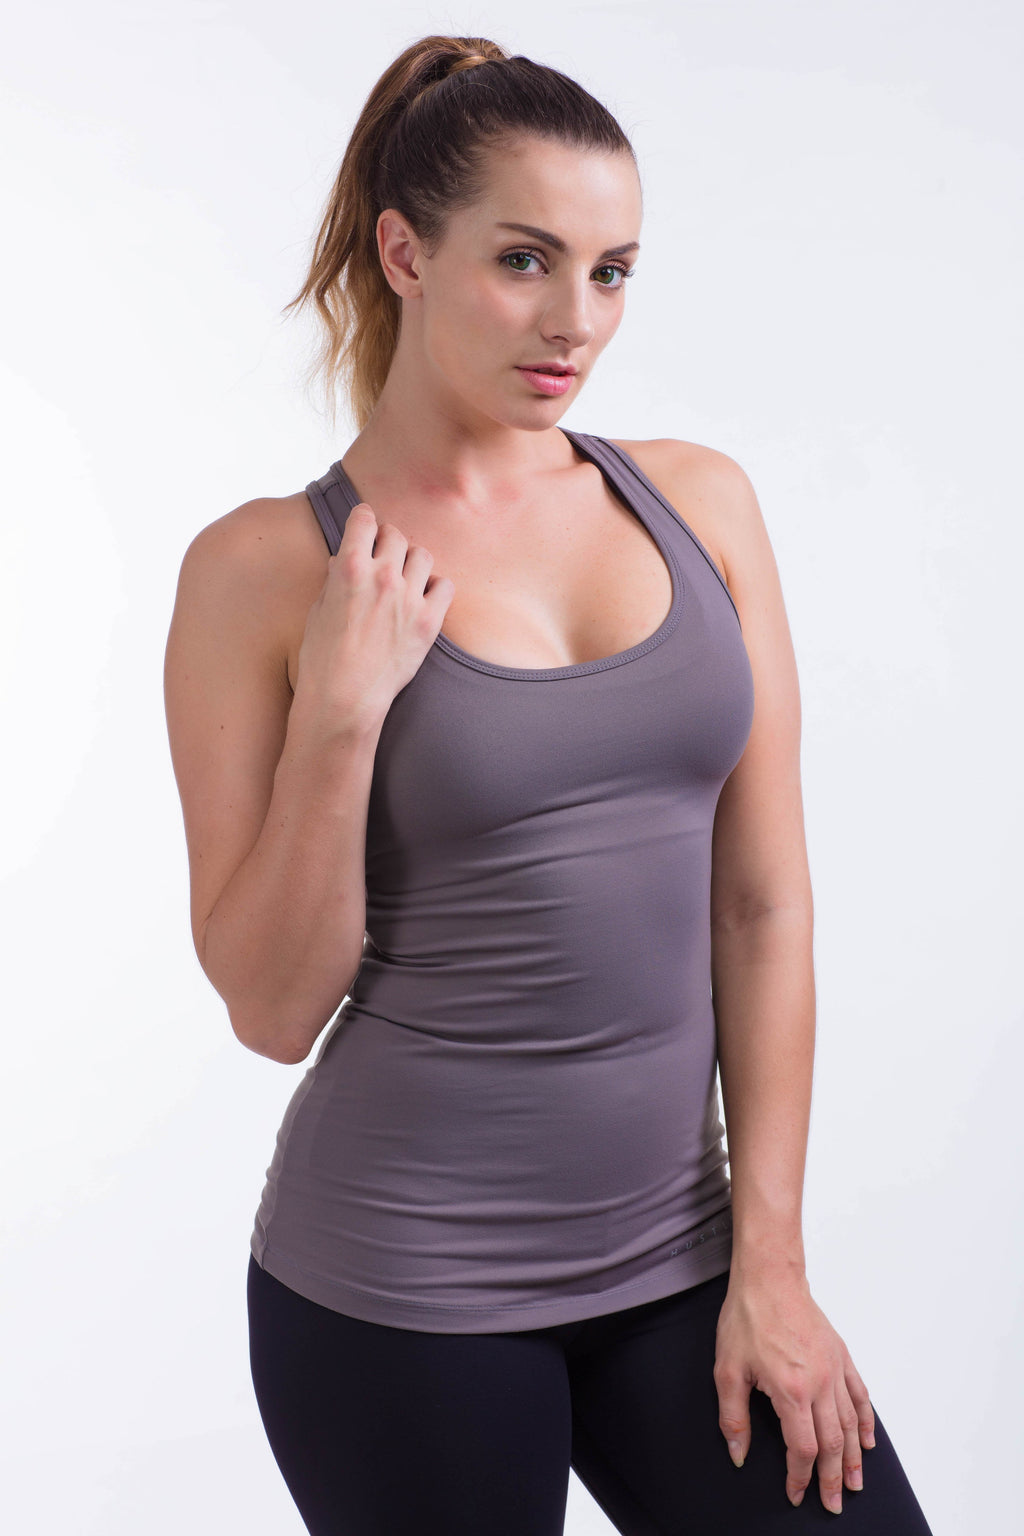 BARE IN MIND TANK - GREY - hustletics.com